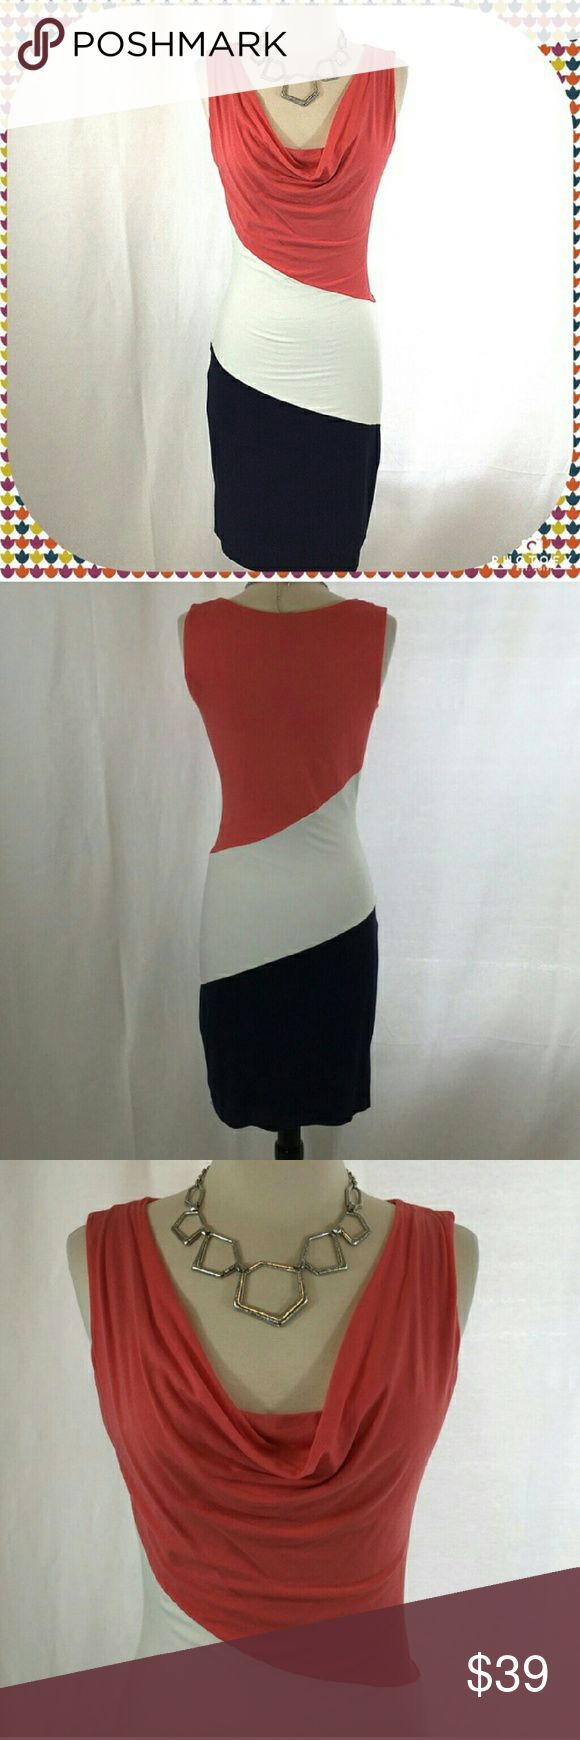 MNG by Mango color block midi dress Stunning body con midi dress from MNG by Mango size XS. Fabric content tags removed but feels like a rayon and spandex blend. Fully lined. Blue cream and salmon color blocking with gorgeous drape neck. 38 inches long. Waist is 28 inches. MNG by Mango Dresses Midi